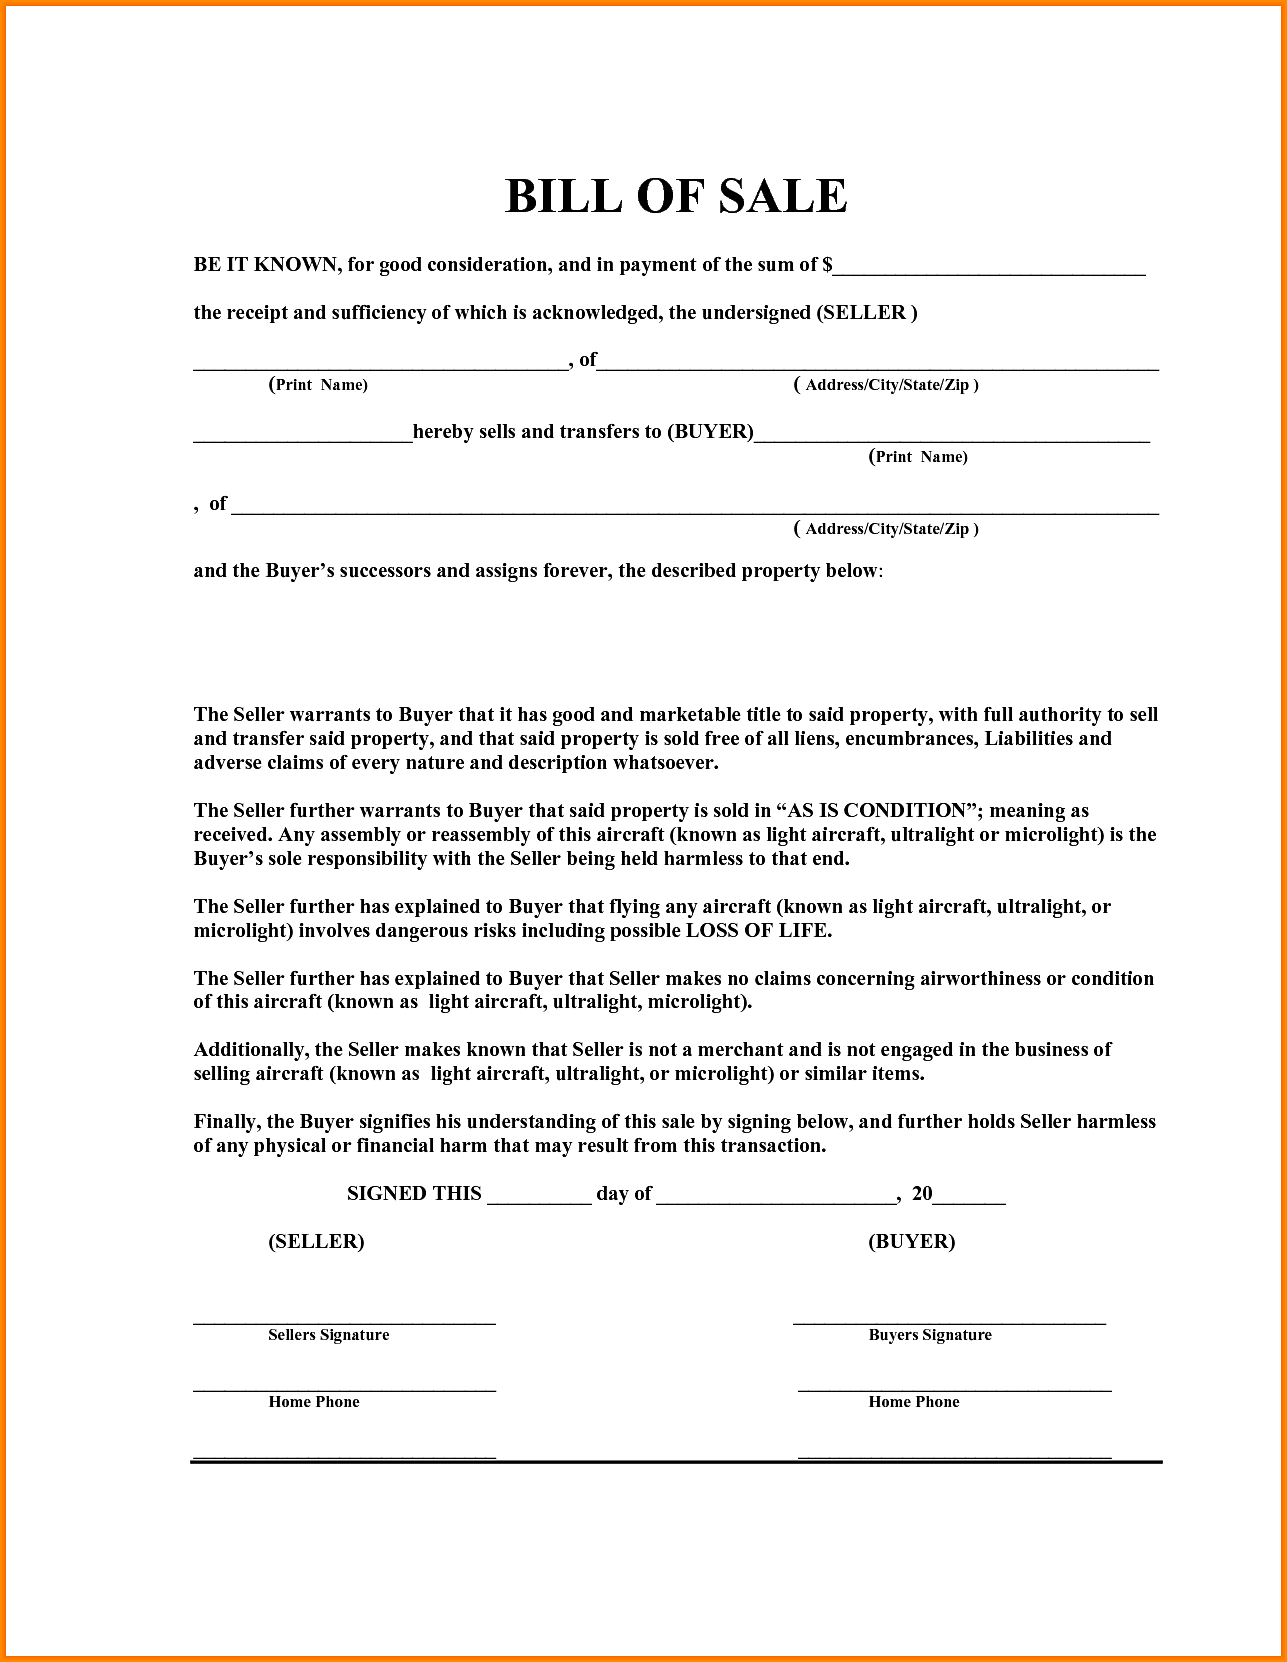 Bill Of Sale Template For Boat Motor And Trailer And Boat Bill Of Sale Template Alberta